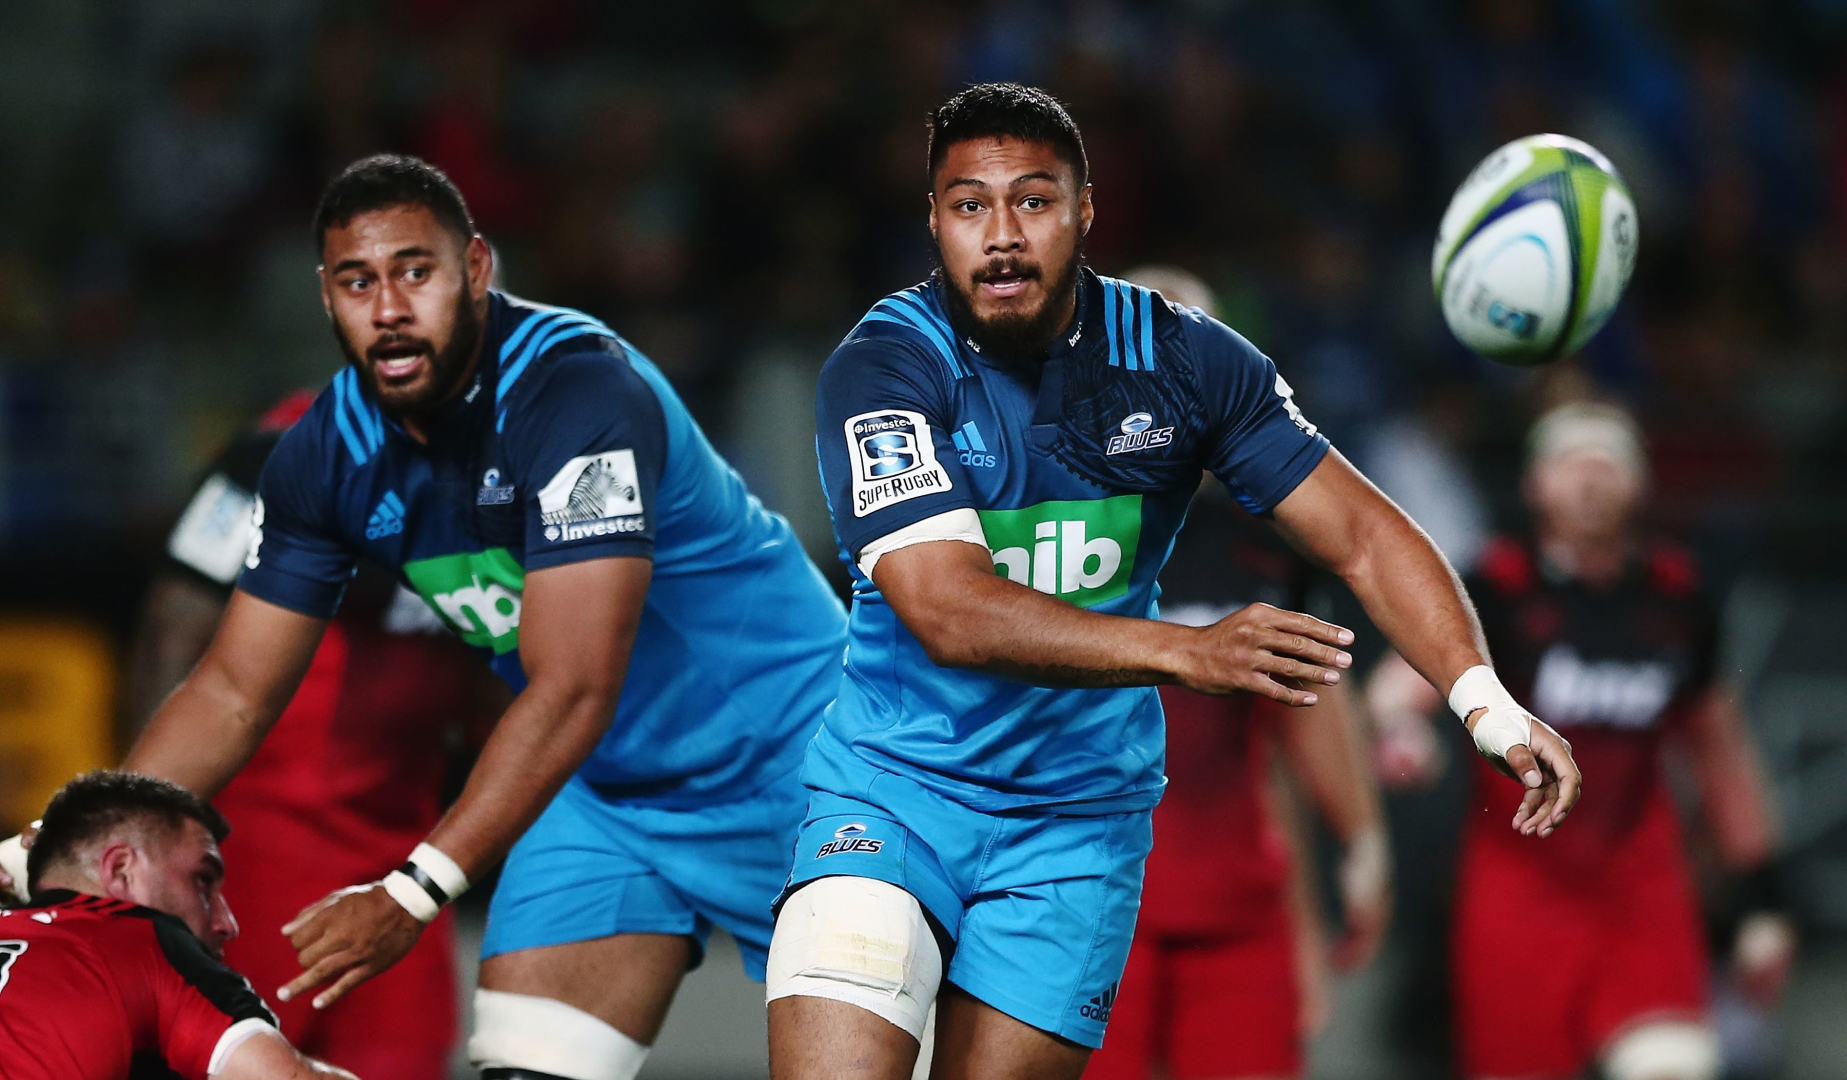 Moala called up as cover for the All Blacks